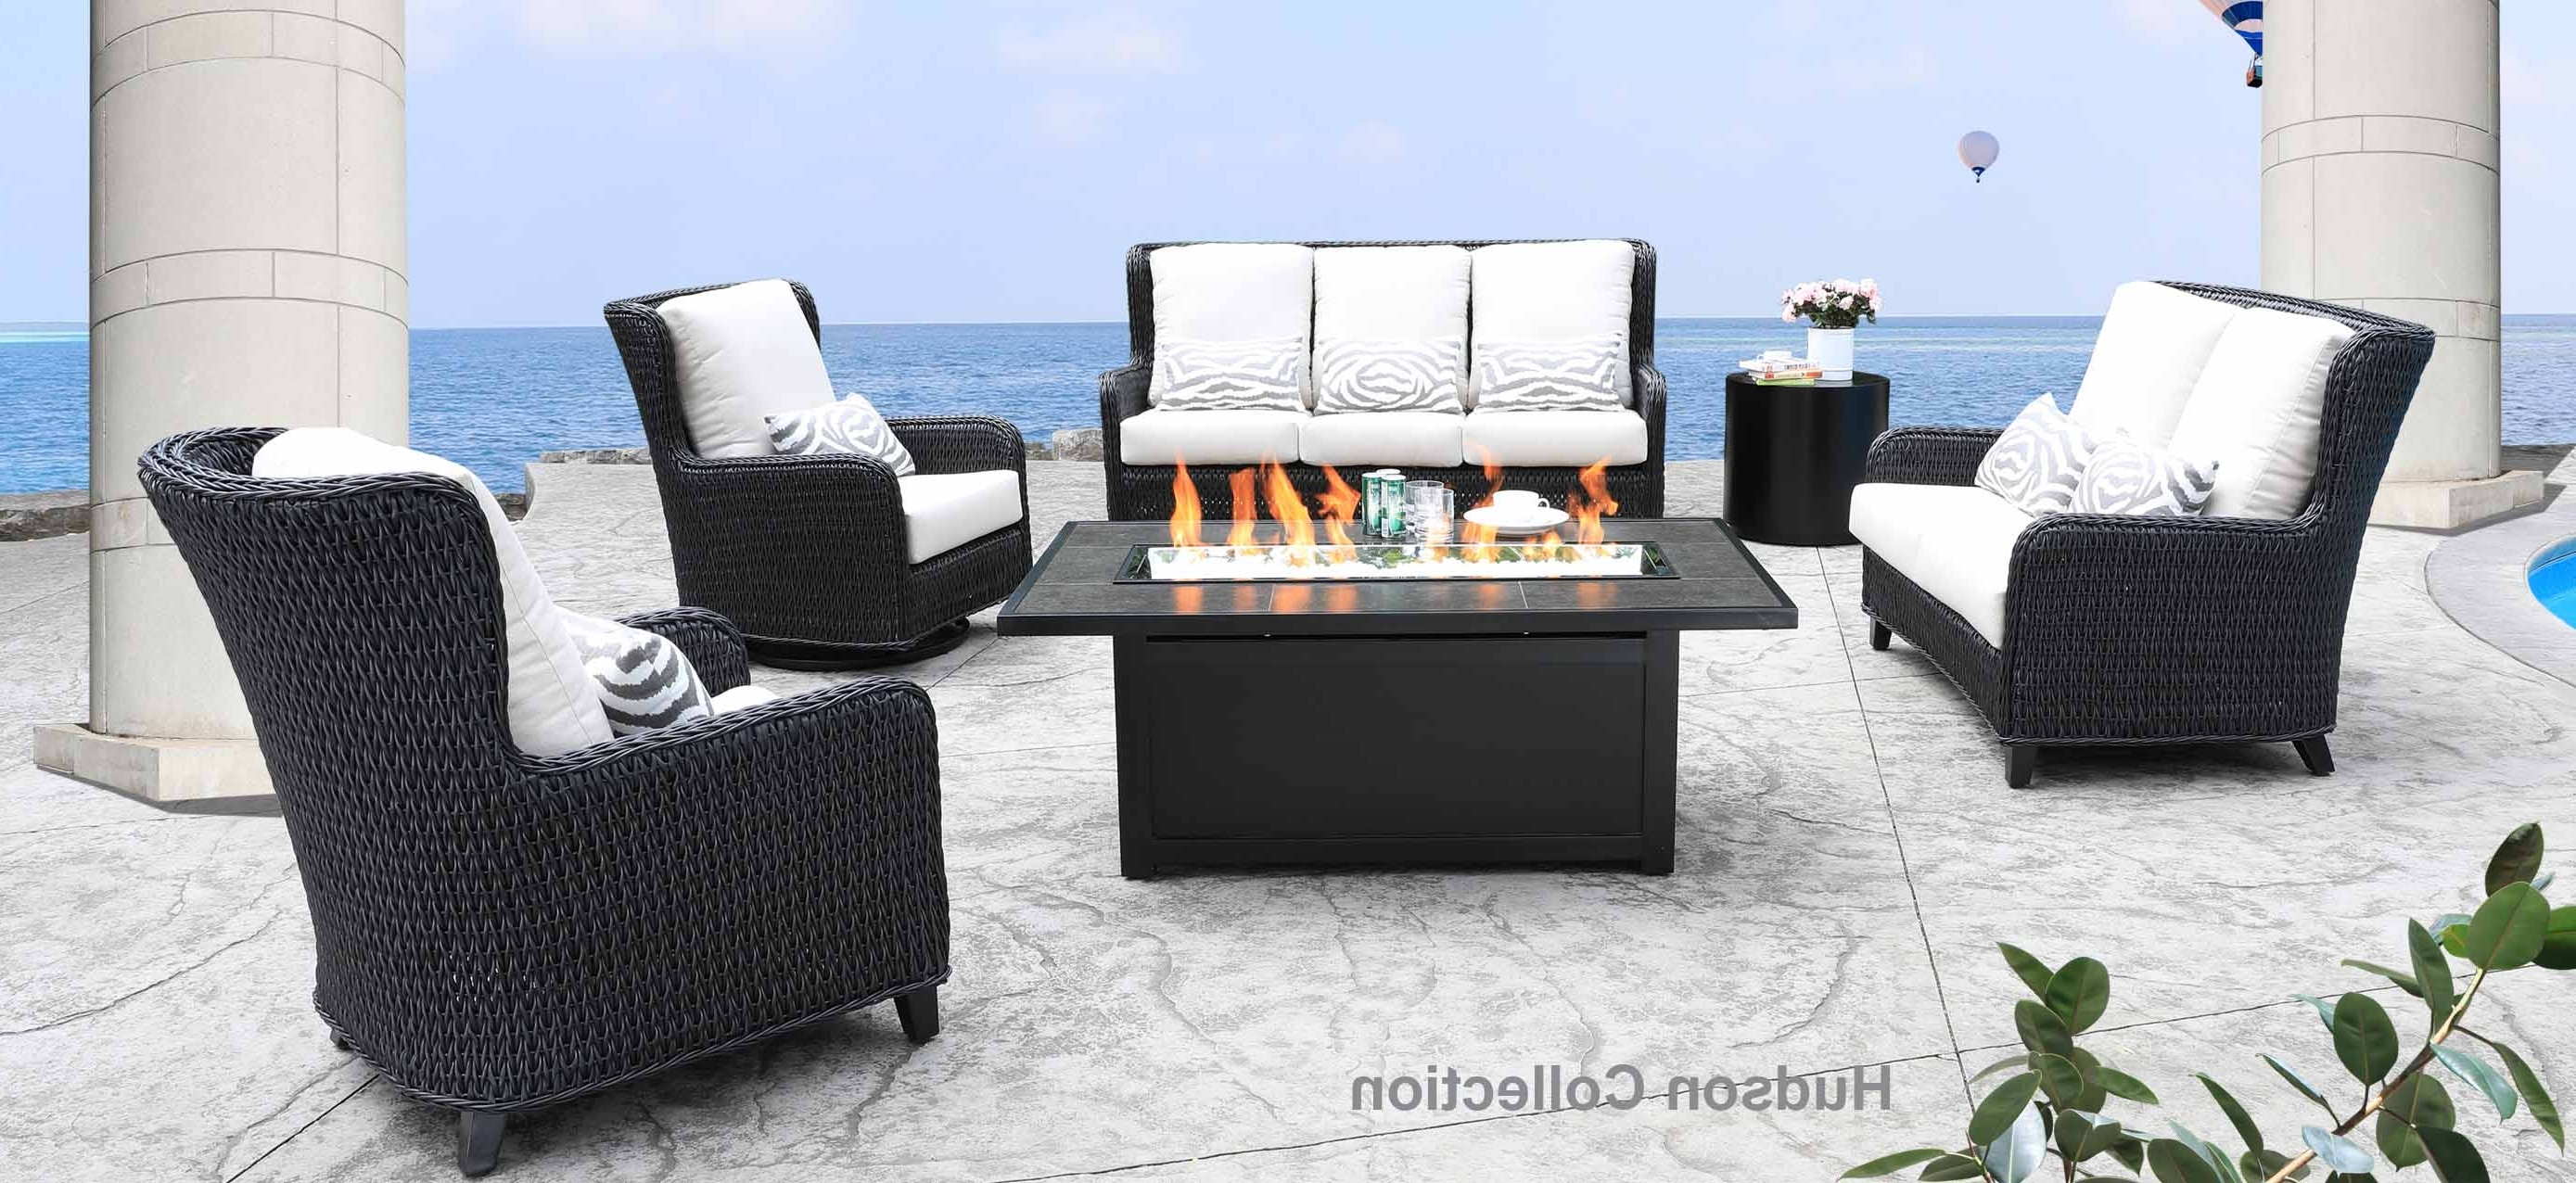 Most Current Shop Patio Furniture At Cabanacoast® Regarding Gold Coast Patio Umbrellas (View 19 of 20)